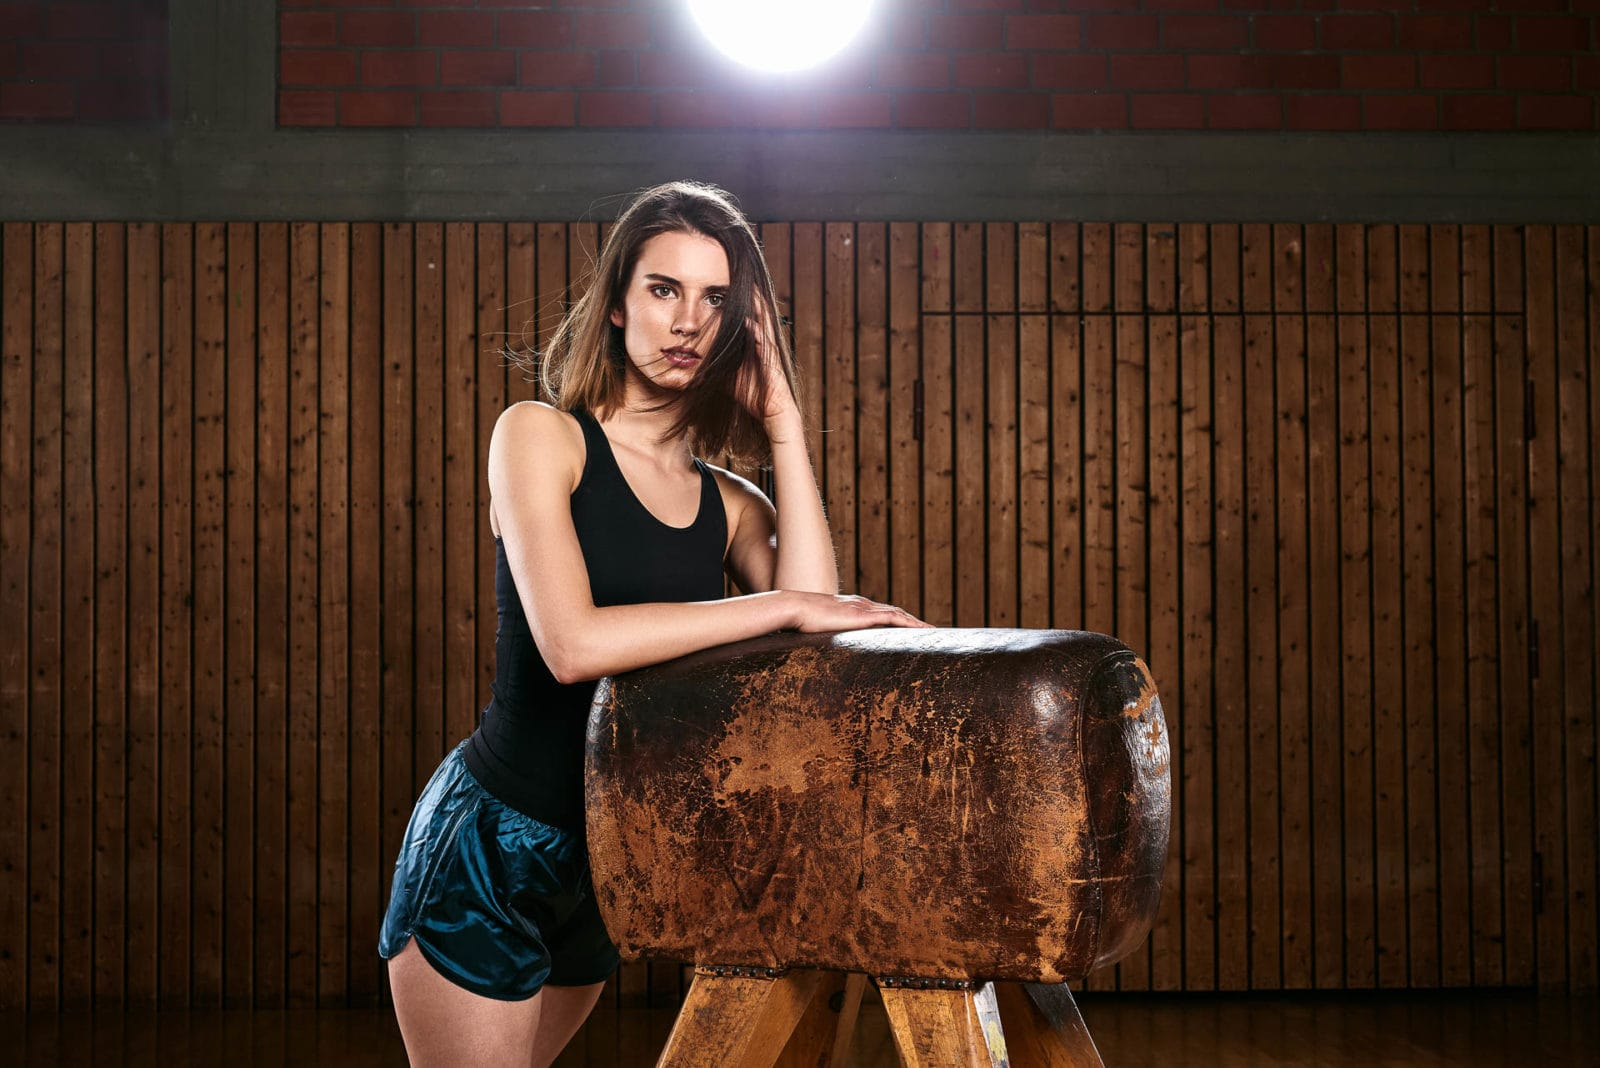 Sport Shooting mit Model in Turnhalle